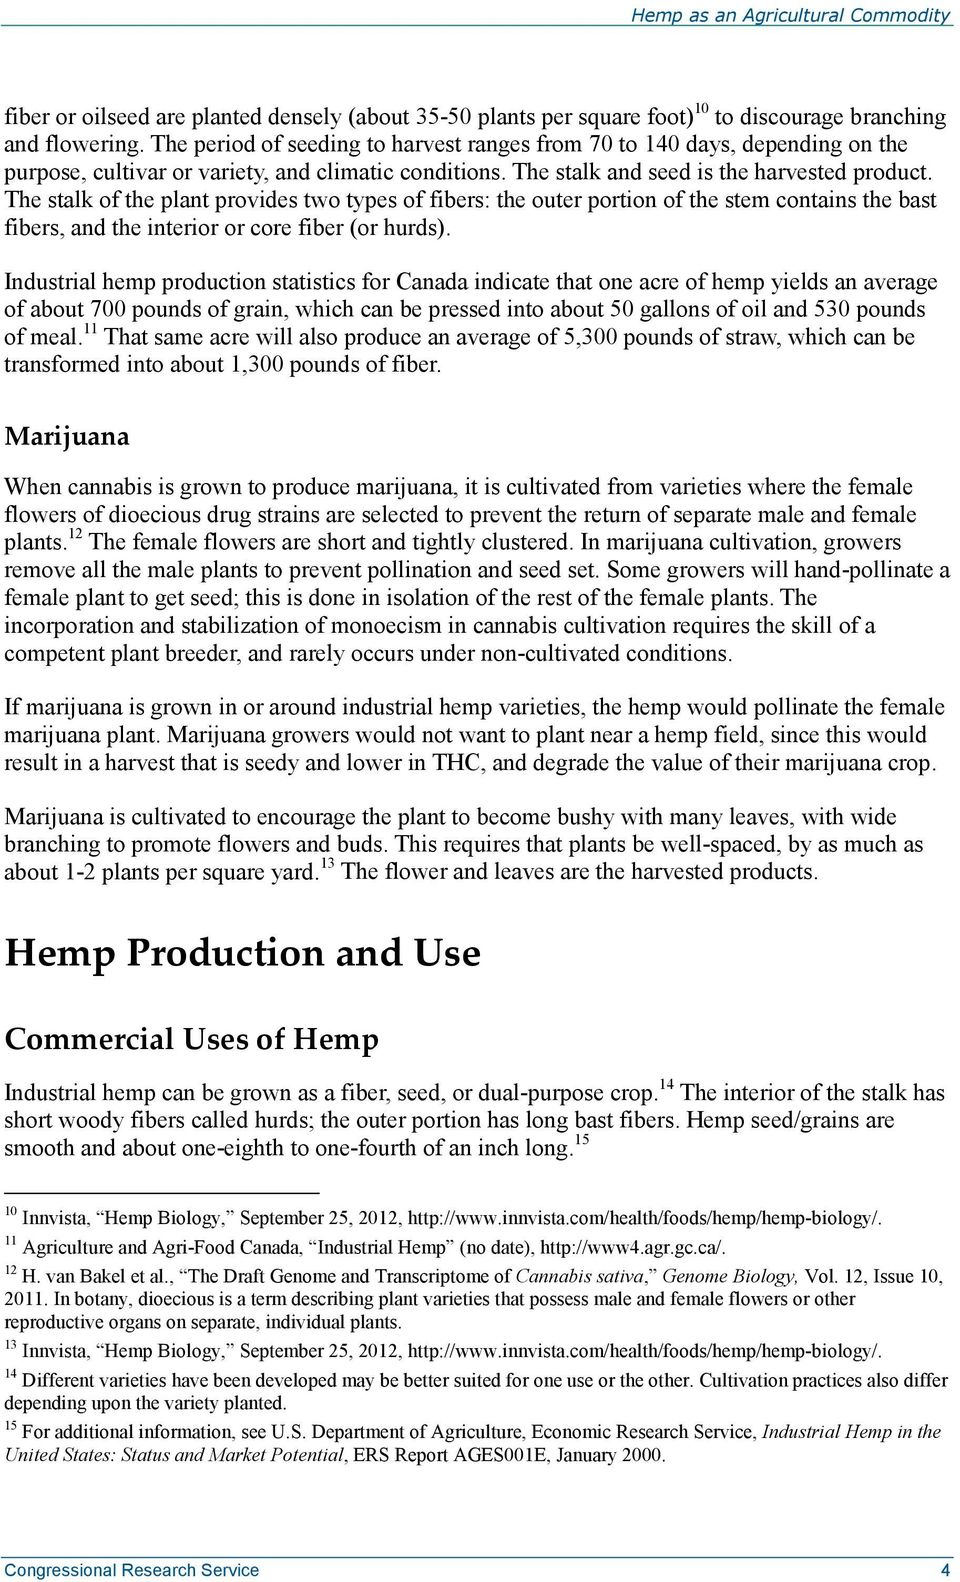 Hemp as an Agricultural Commodity - PDF